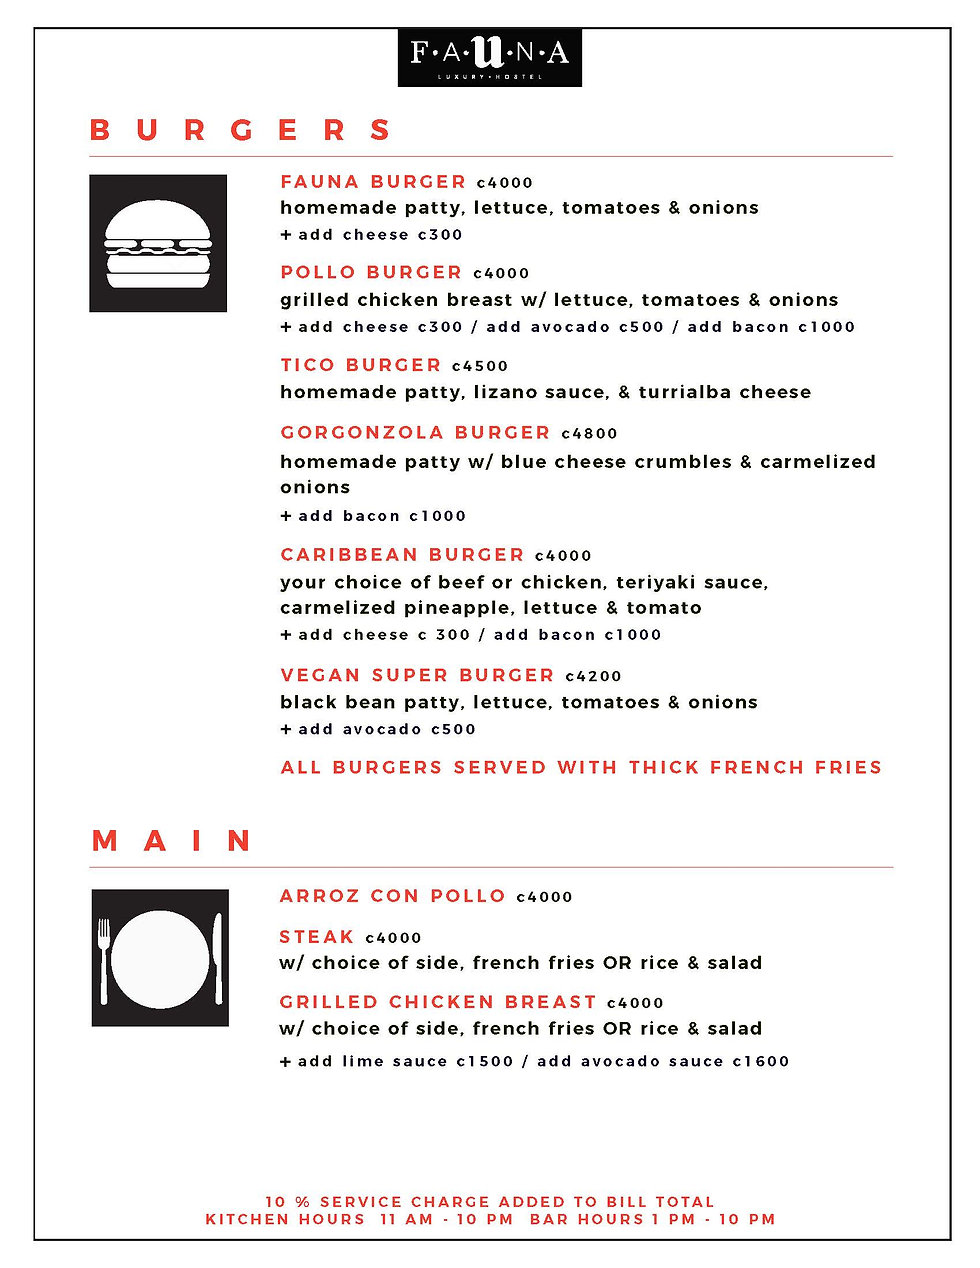 Fauna Luxury Hostel Restaurant Menu Design, Ethos By Design